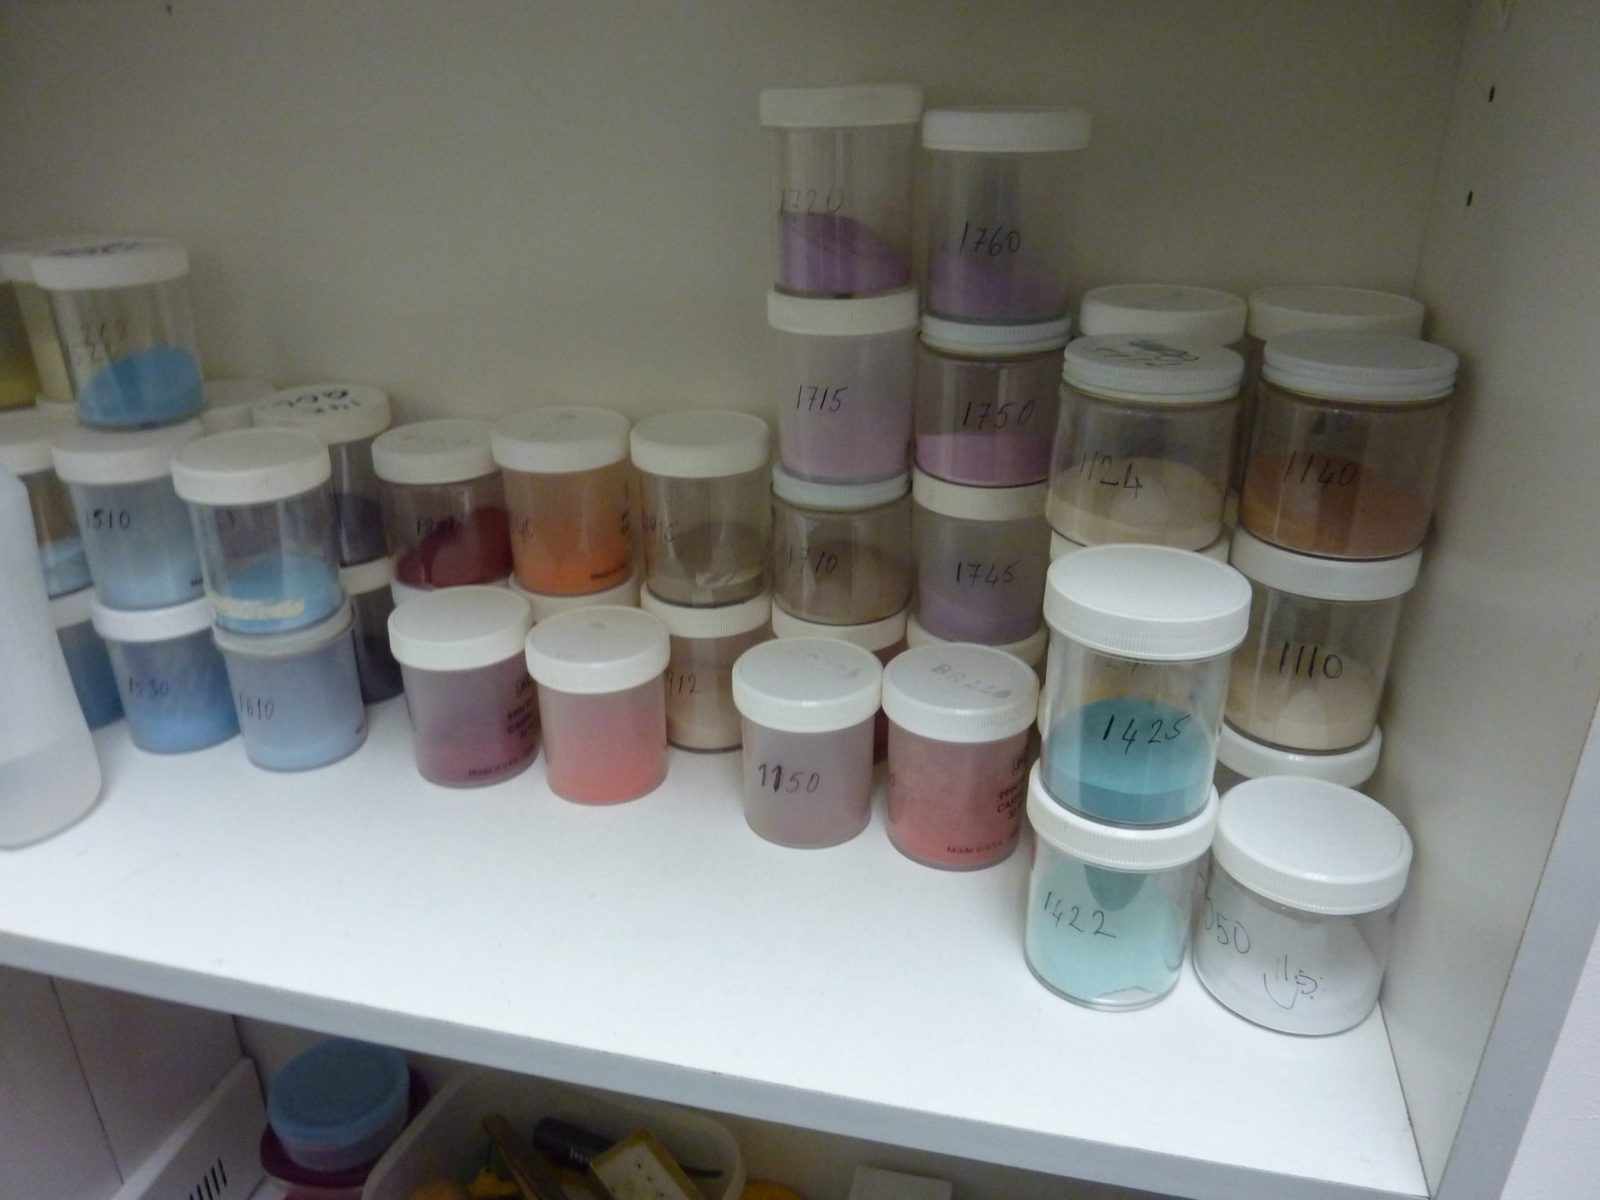 Enamel Powders in different colors on a shelf